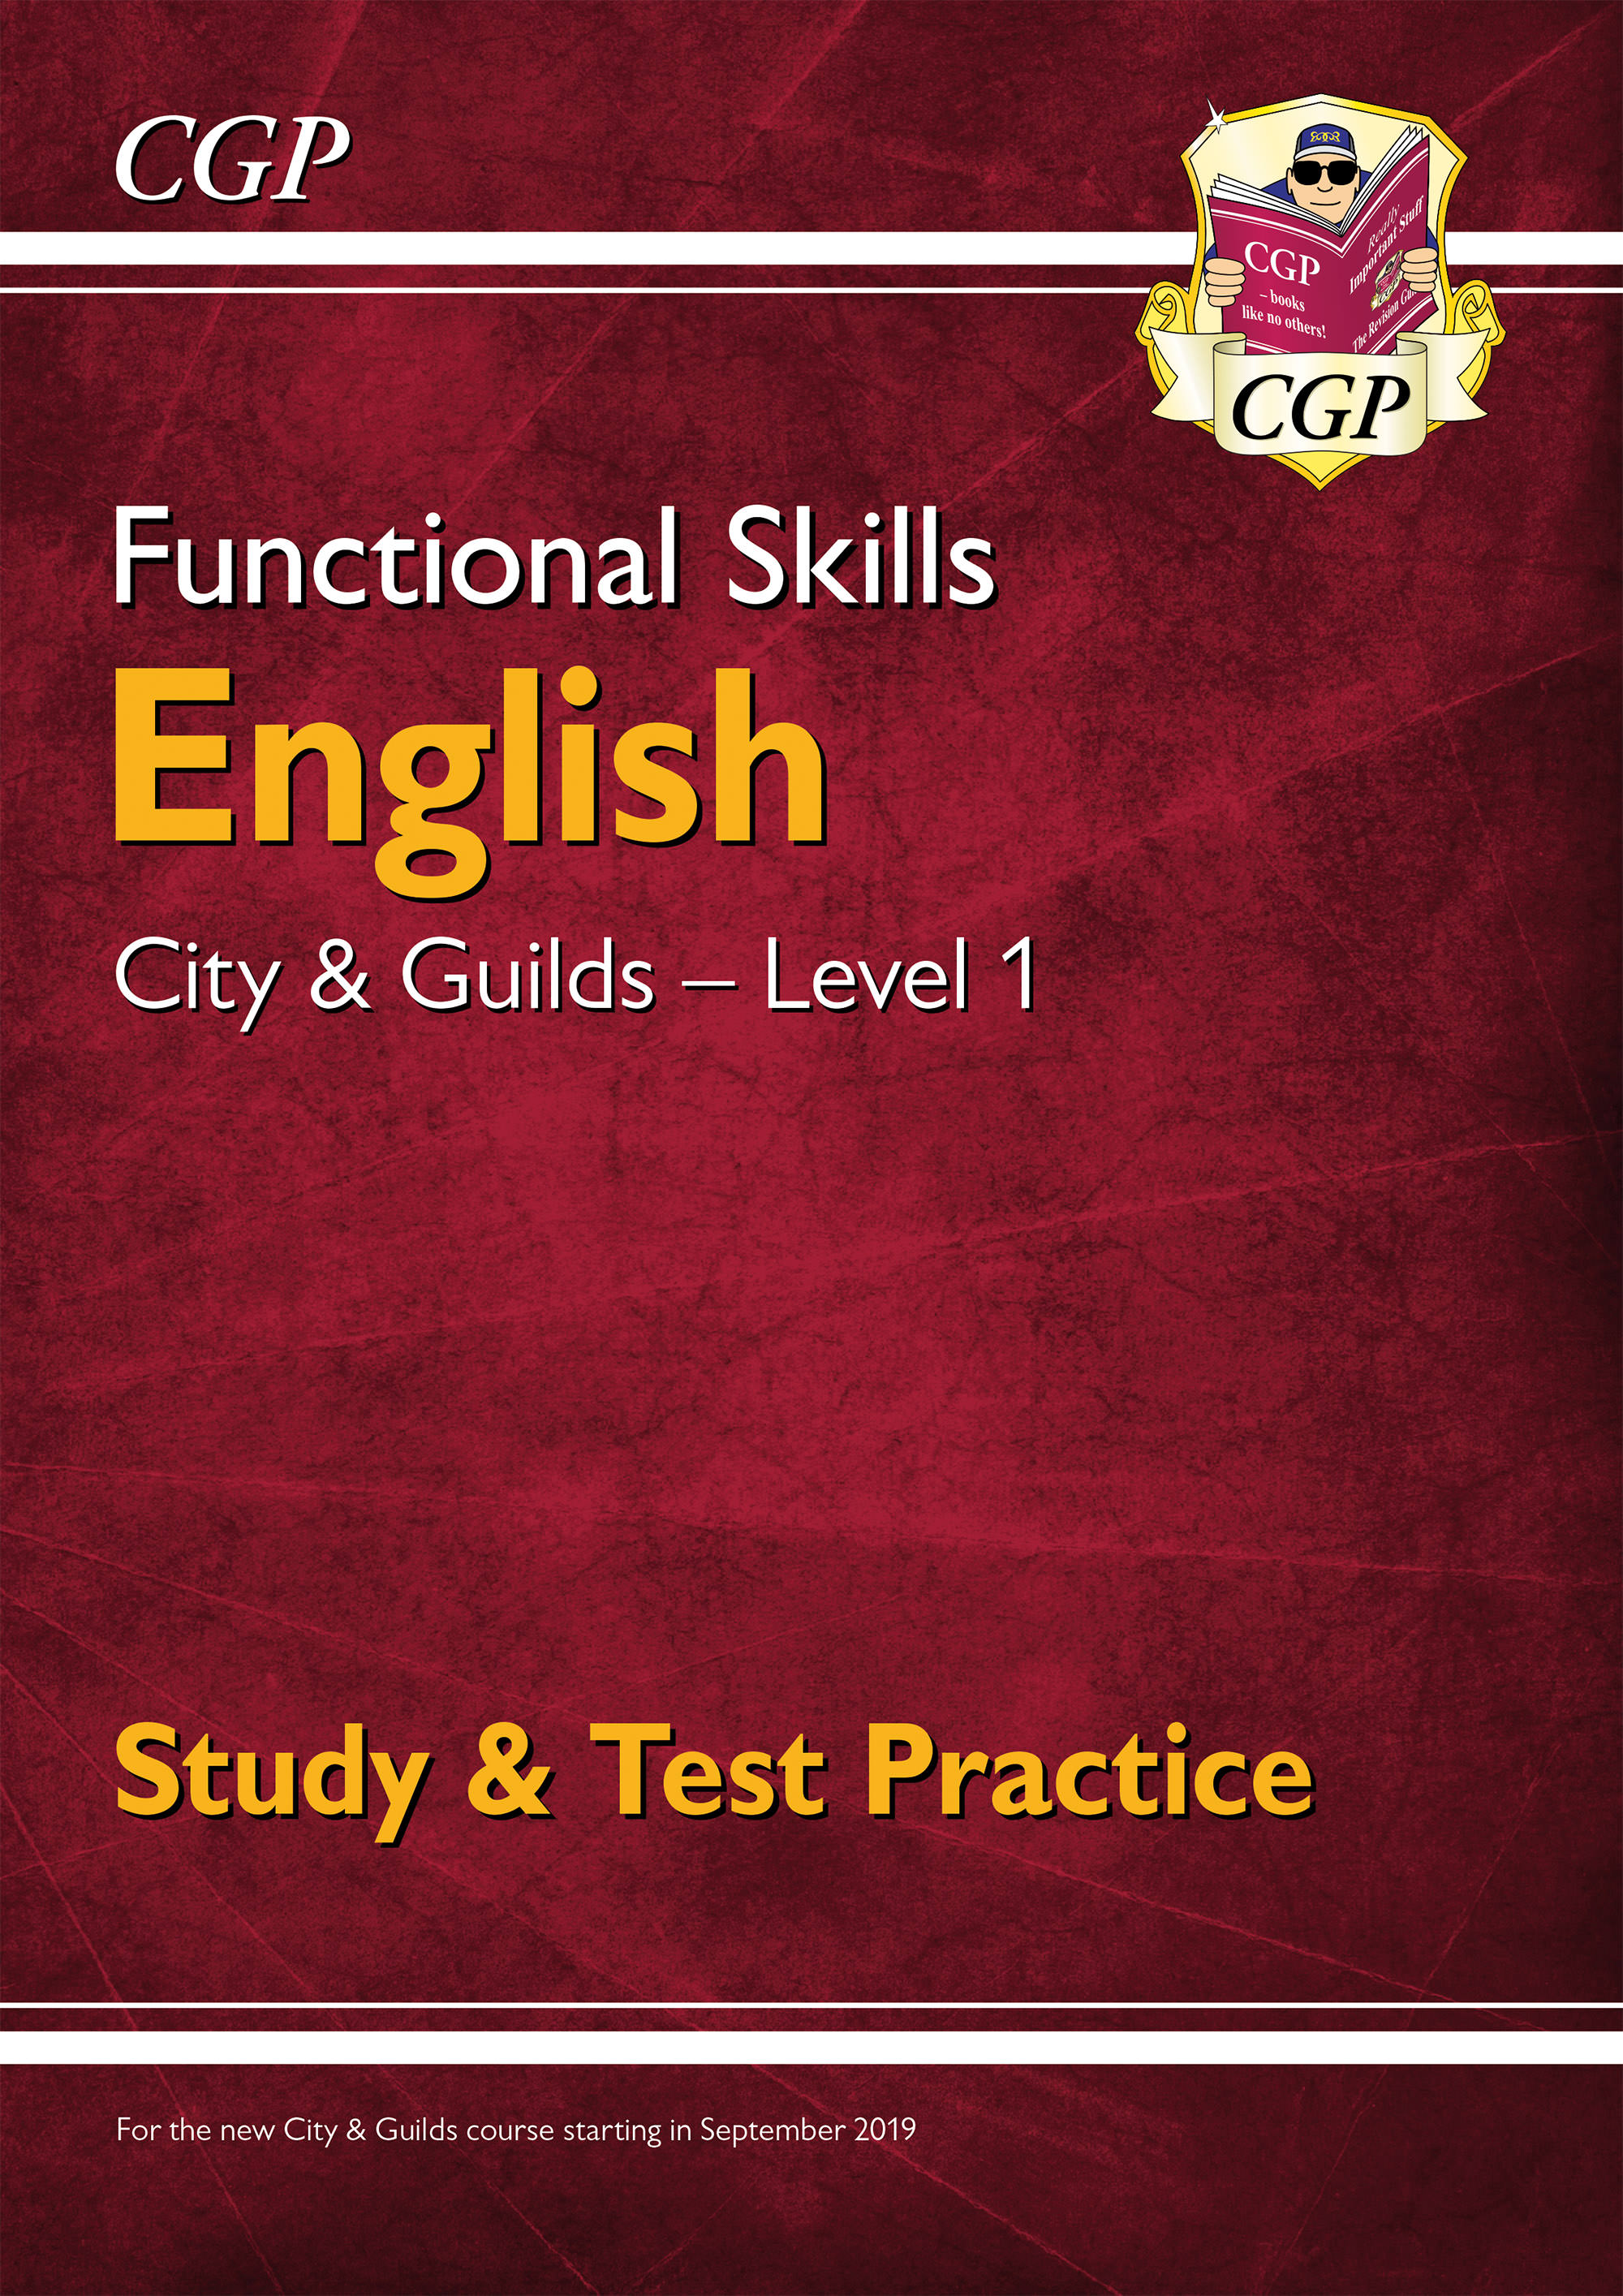 E1CGSRA1D - New Functional Skills English: City & Guilds Level 1 - Study & Test Practice (for 2020 &